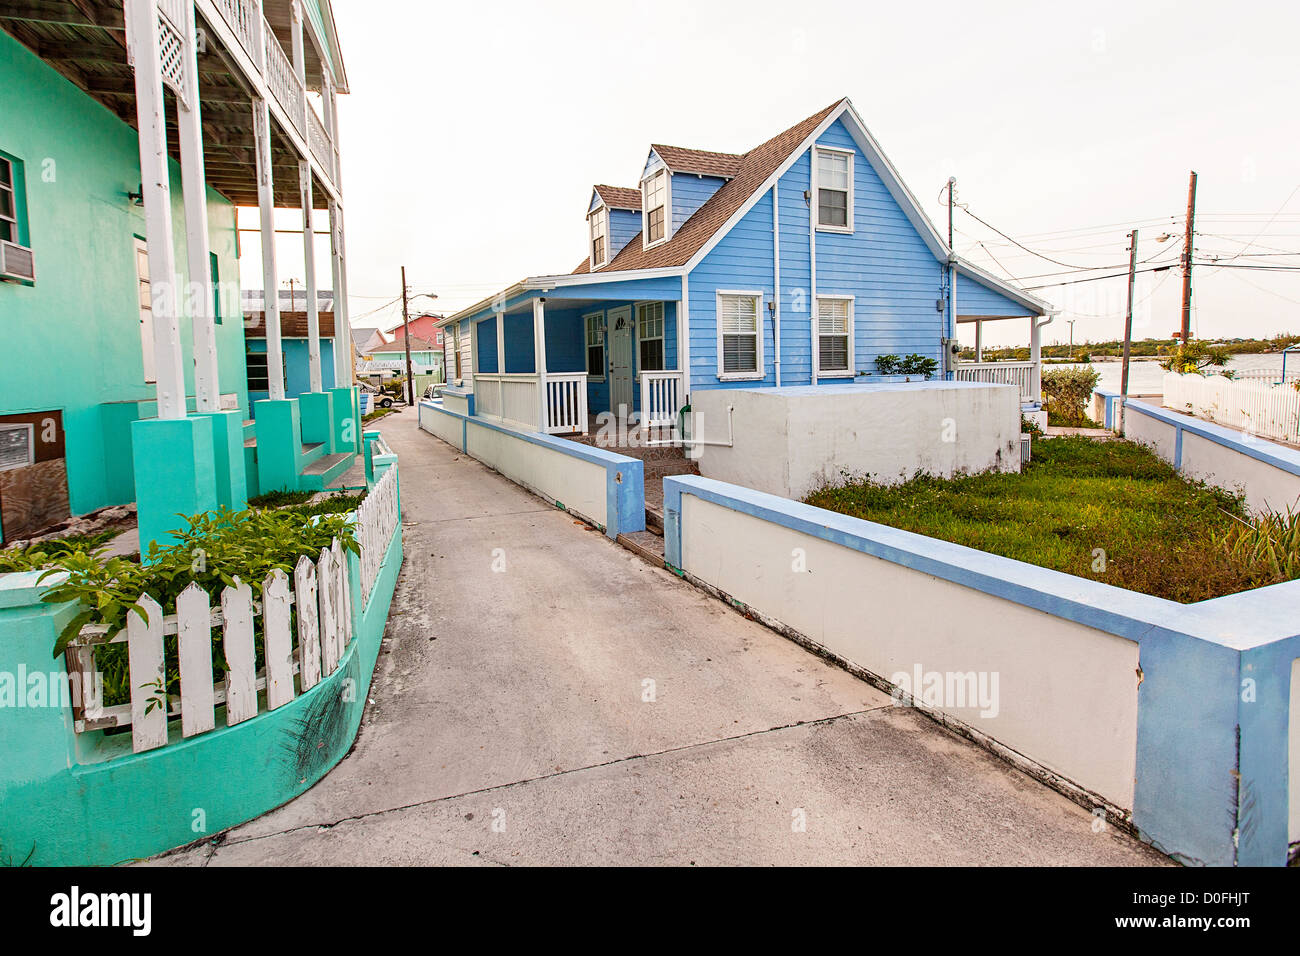 House rentals green turtle cay - Pastel Colored Houses In New Plymouth On Green Turtle Cay Bahamas